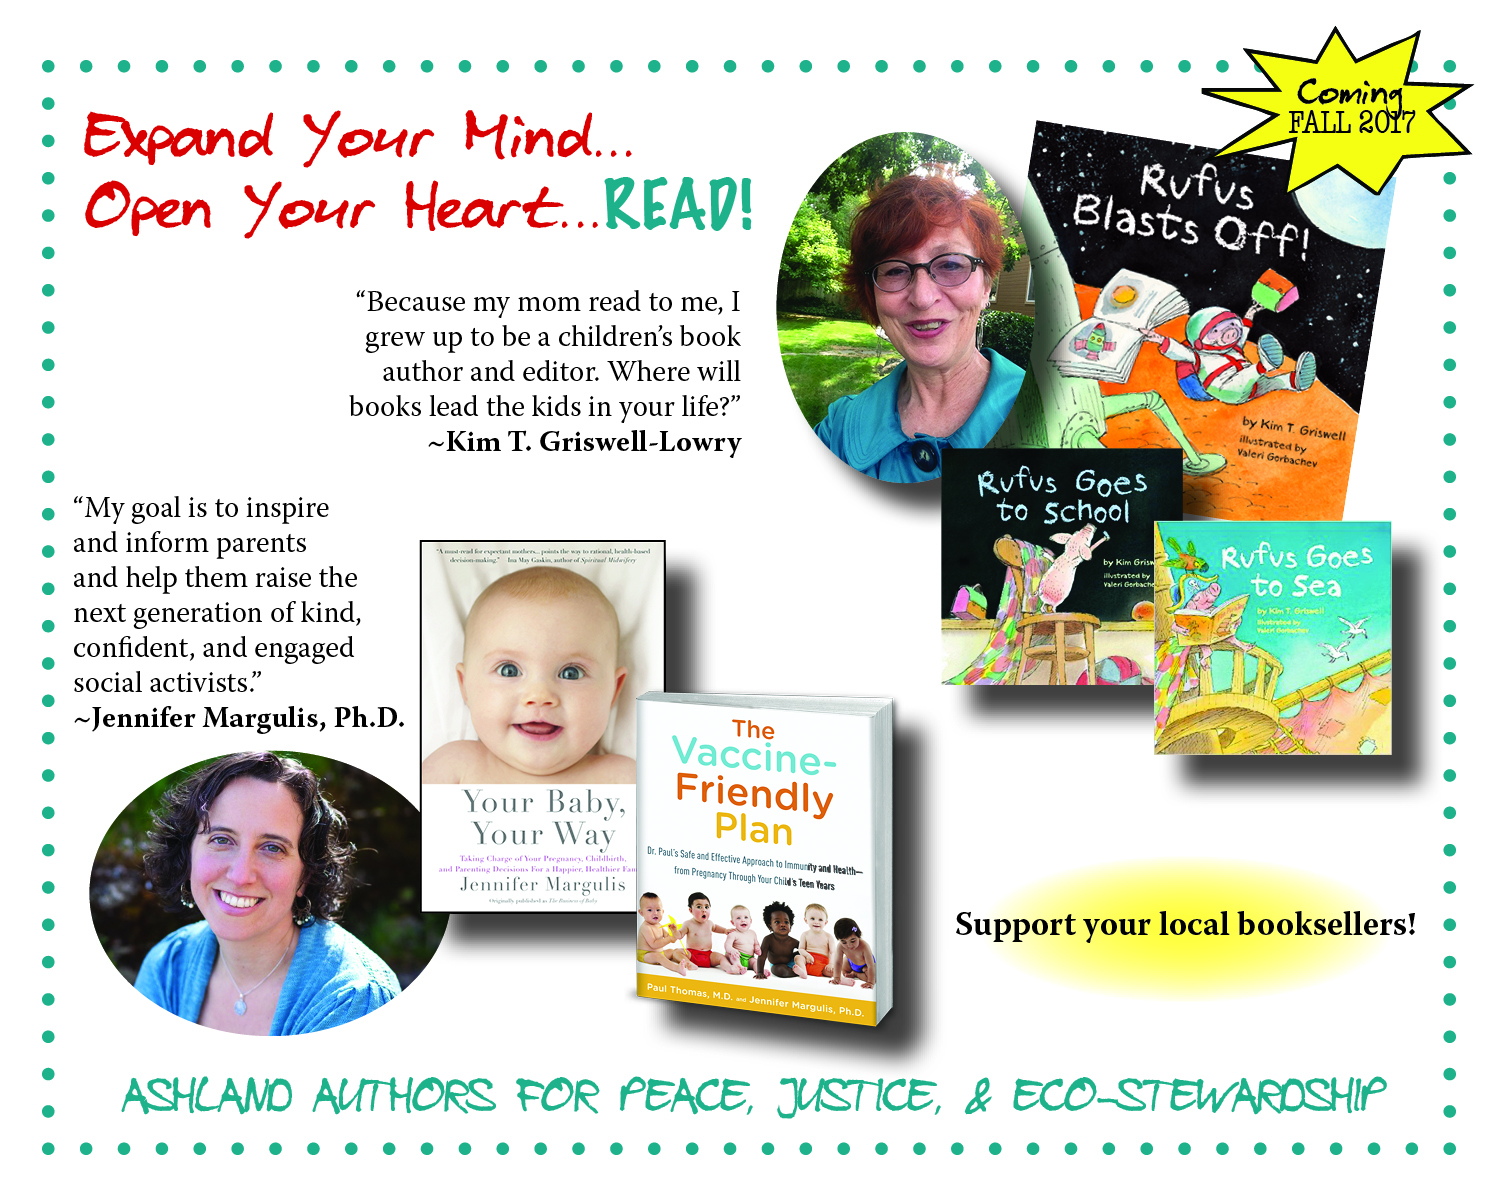 Expand Your Mind, Open Your Heart. These are books that make a difference, and writers who do too